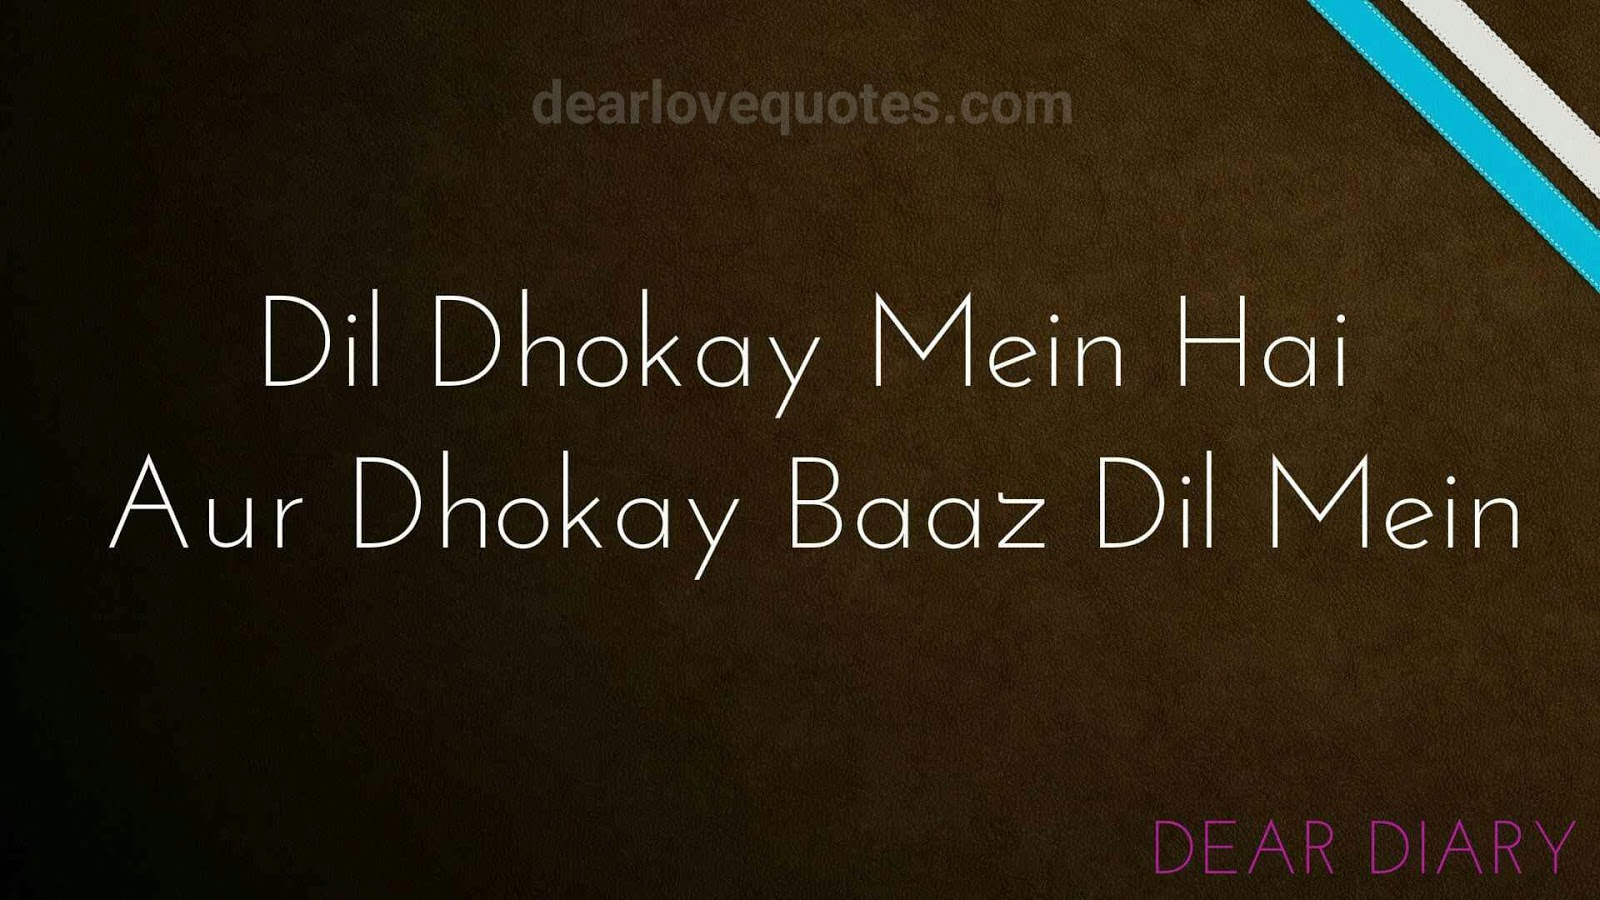 dear diary se images shayari and love quotes-14